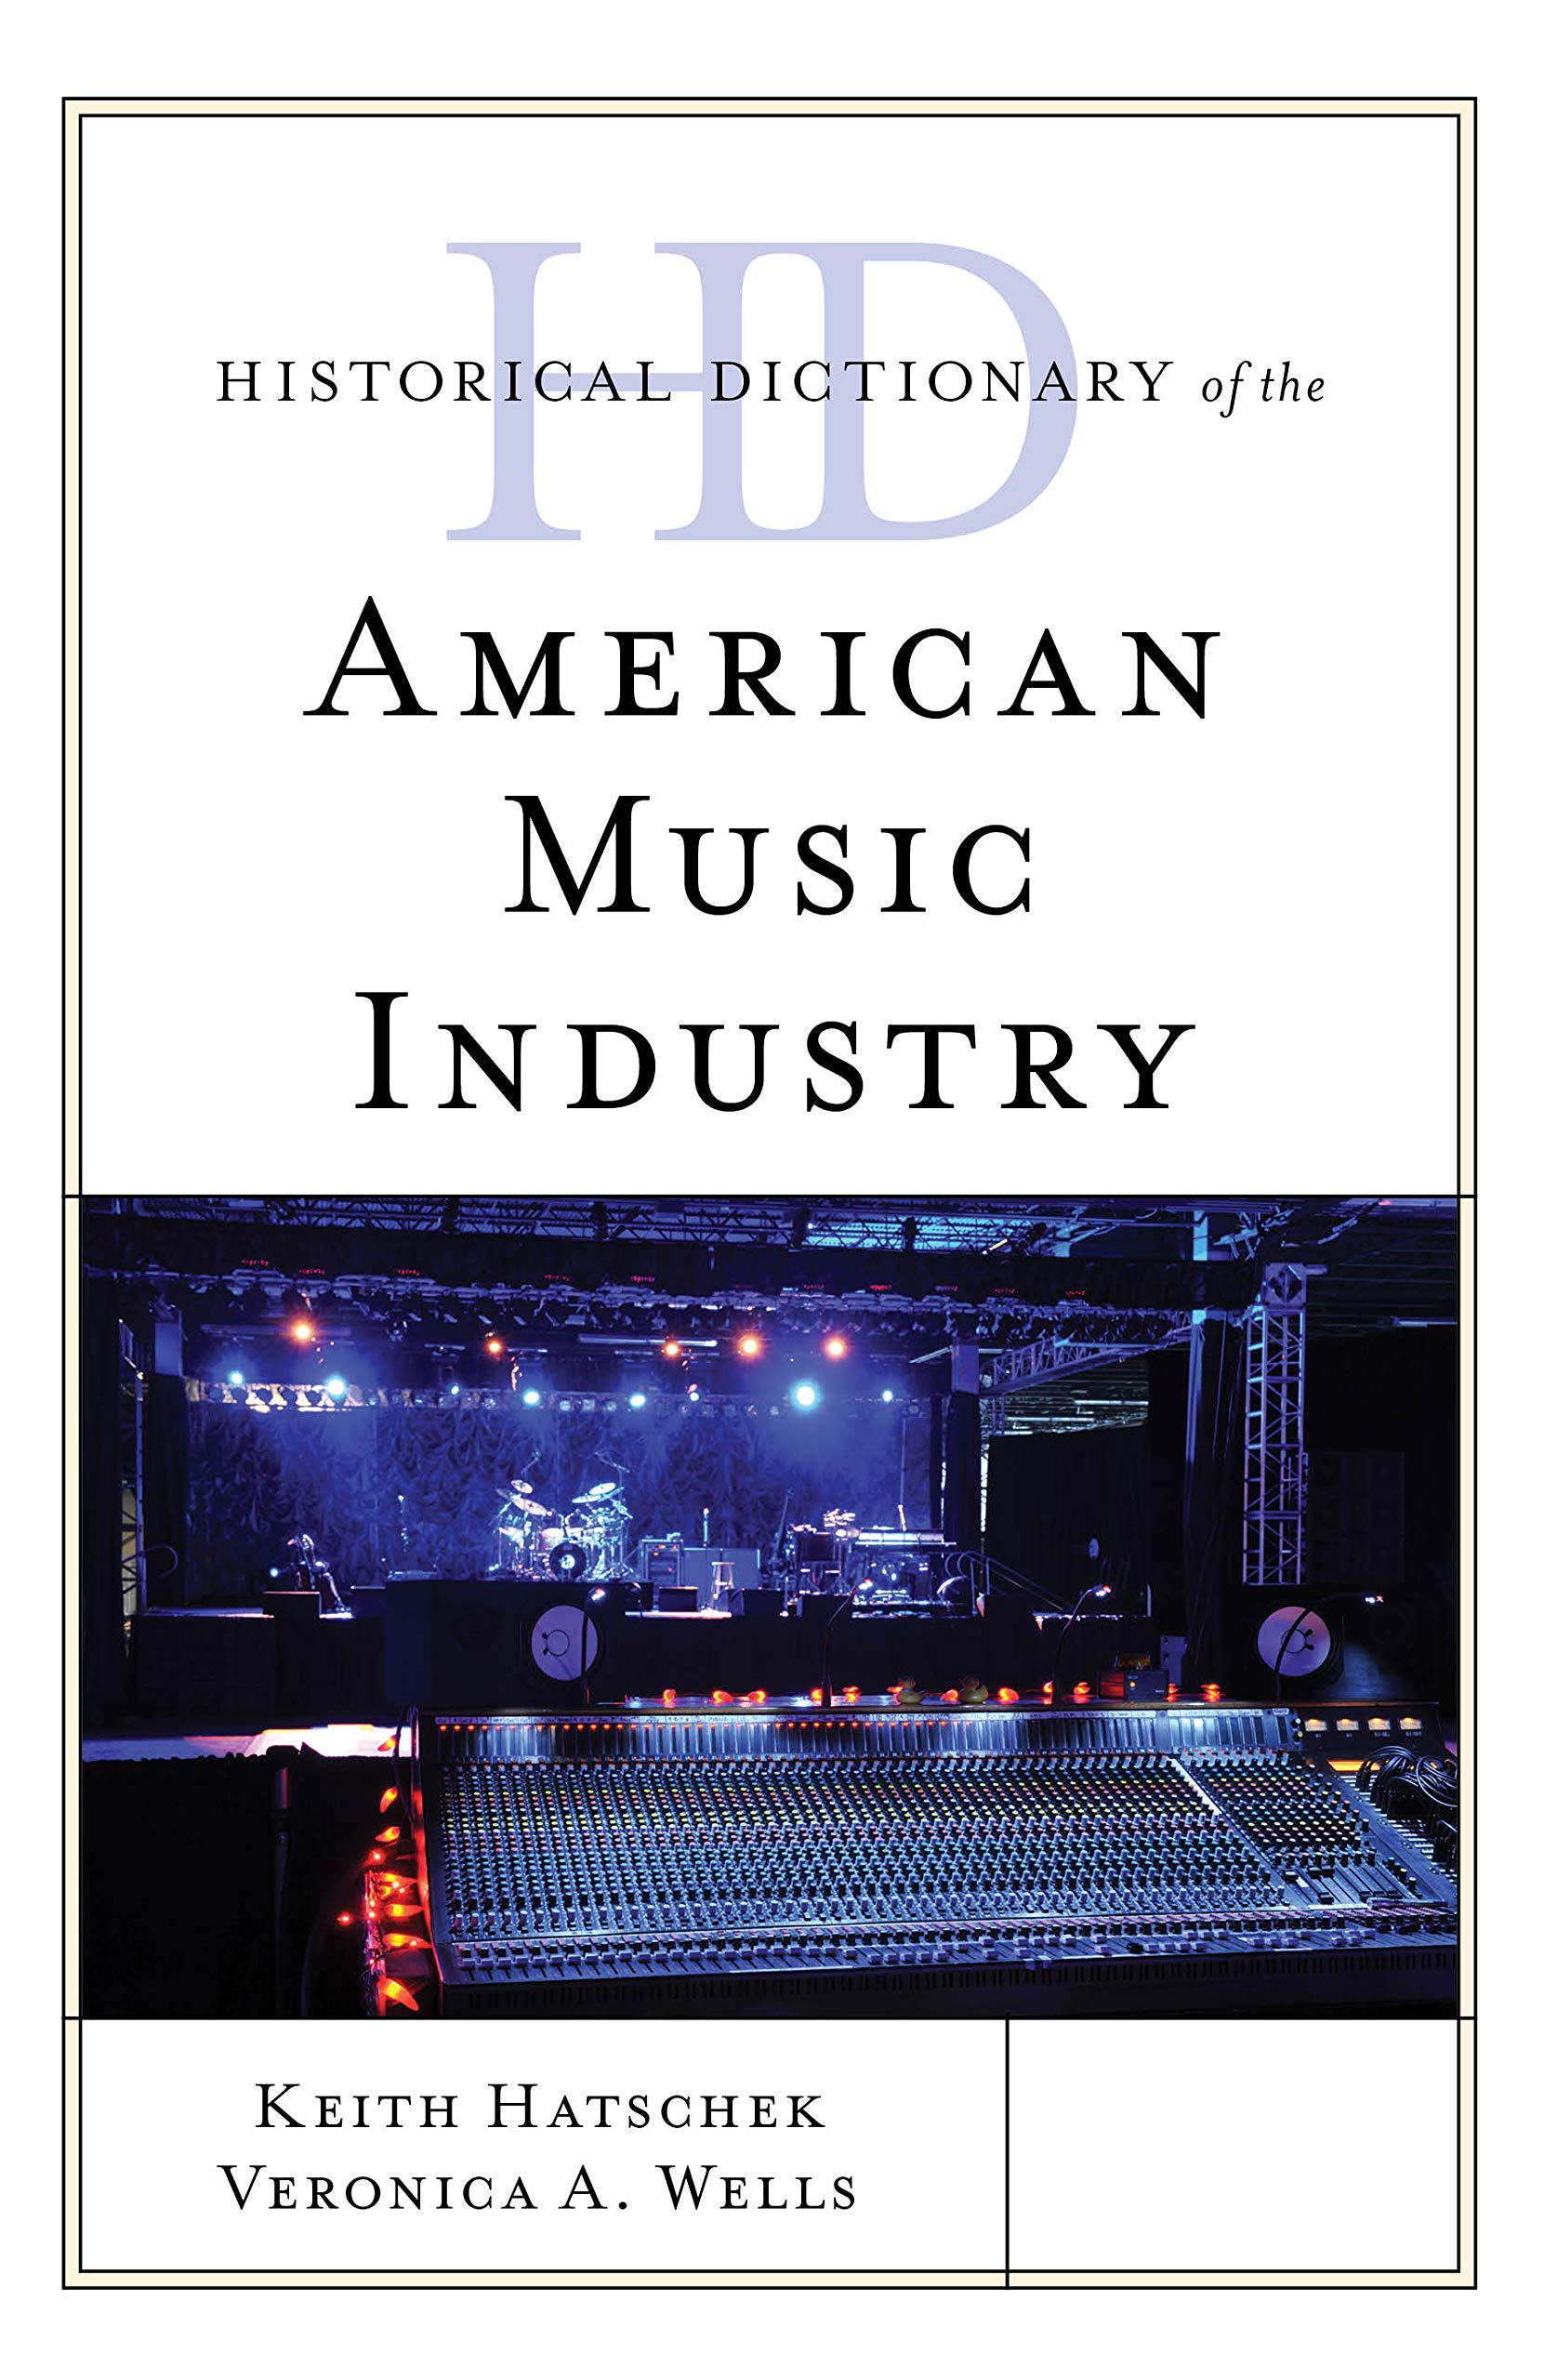 History of American Music Industry cover